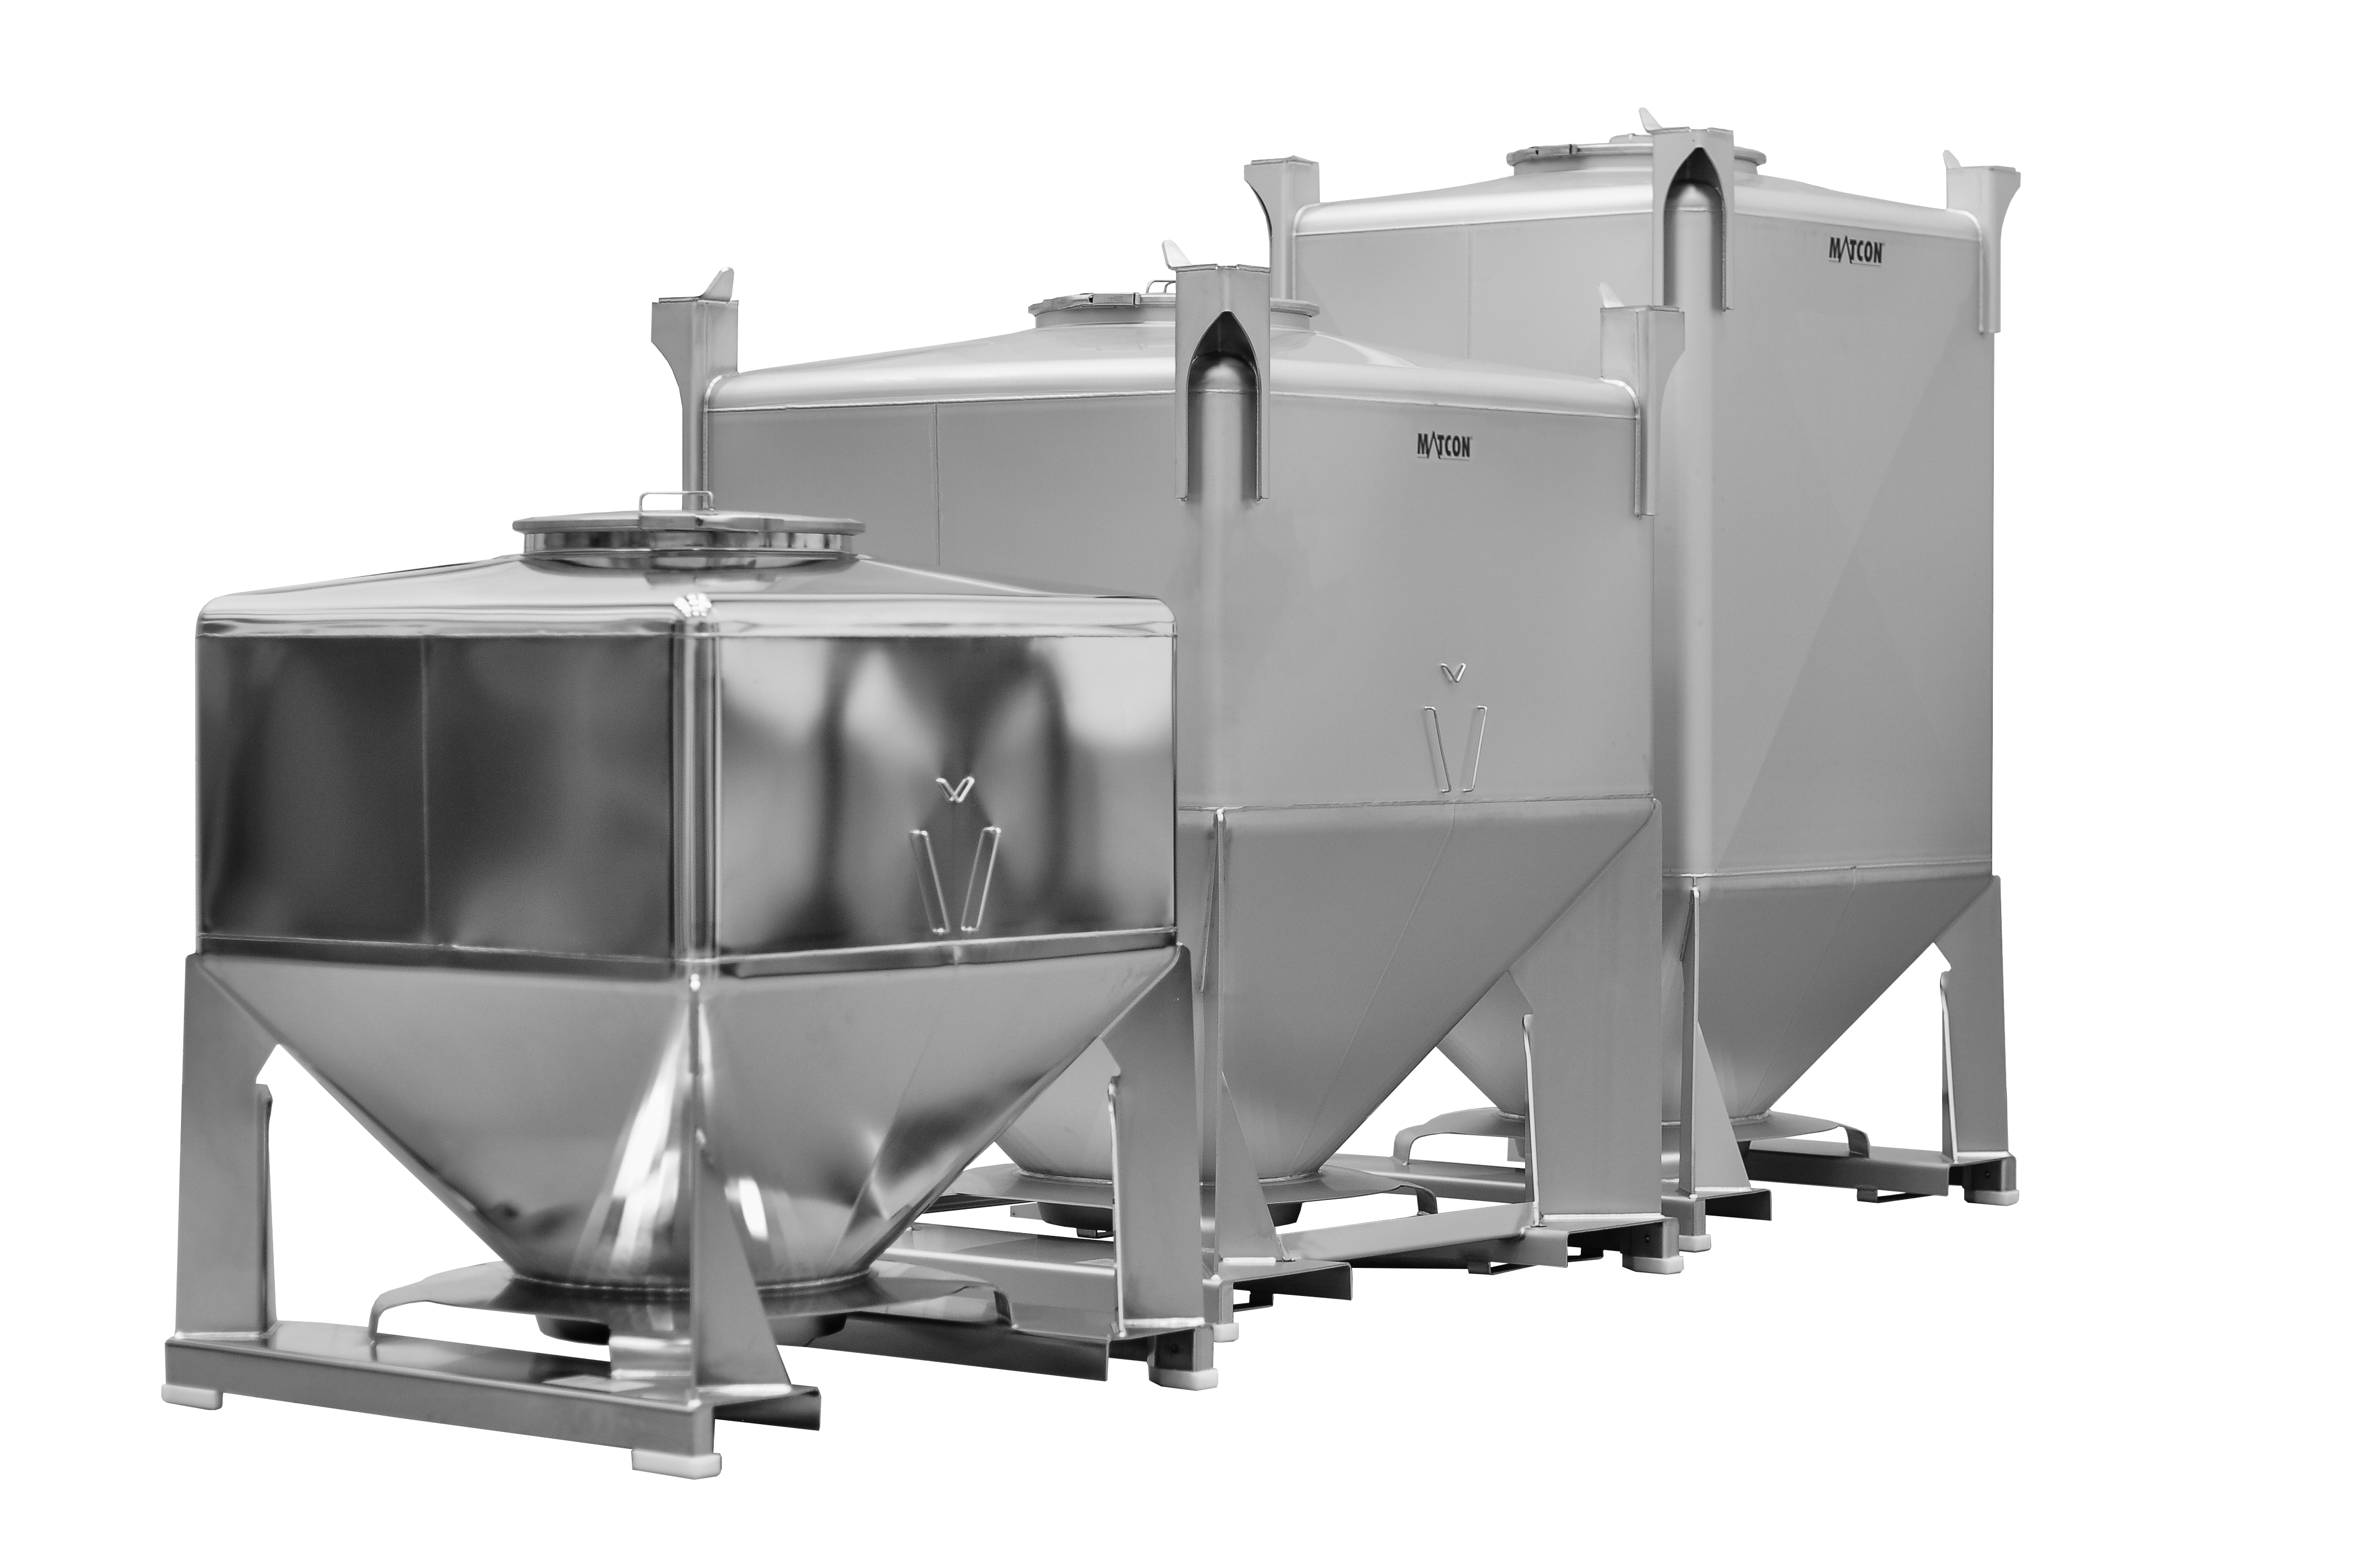 Matcon Intermediate Bulk Containers